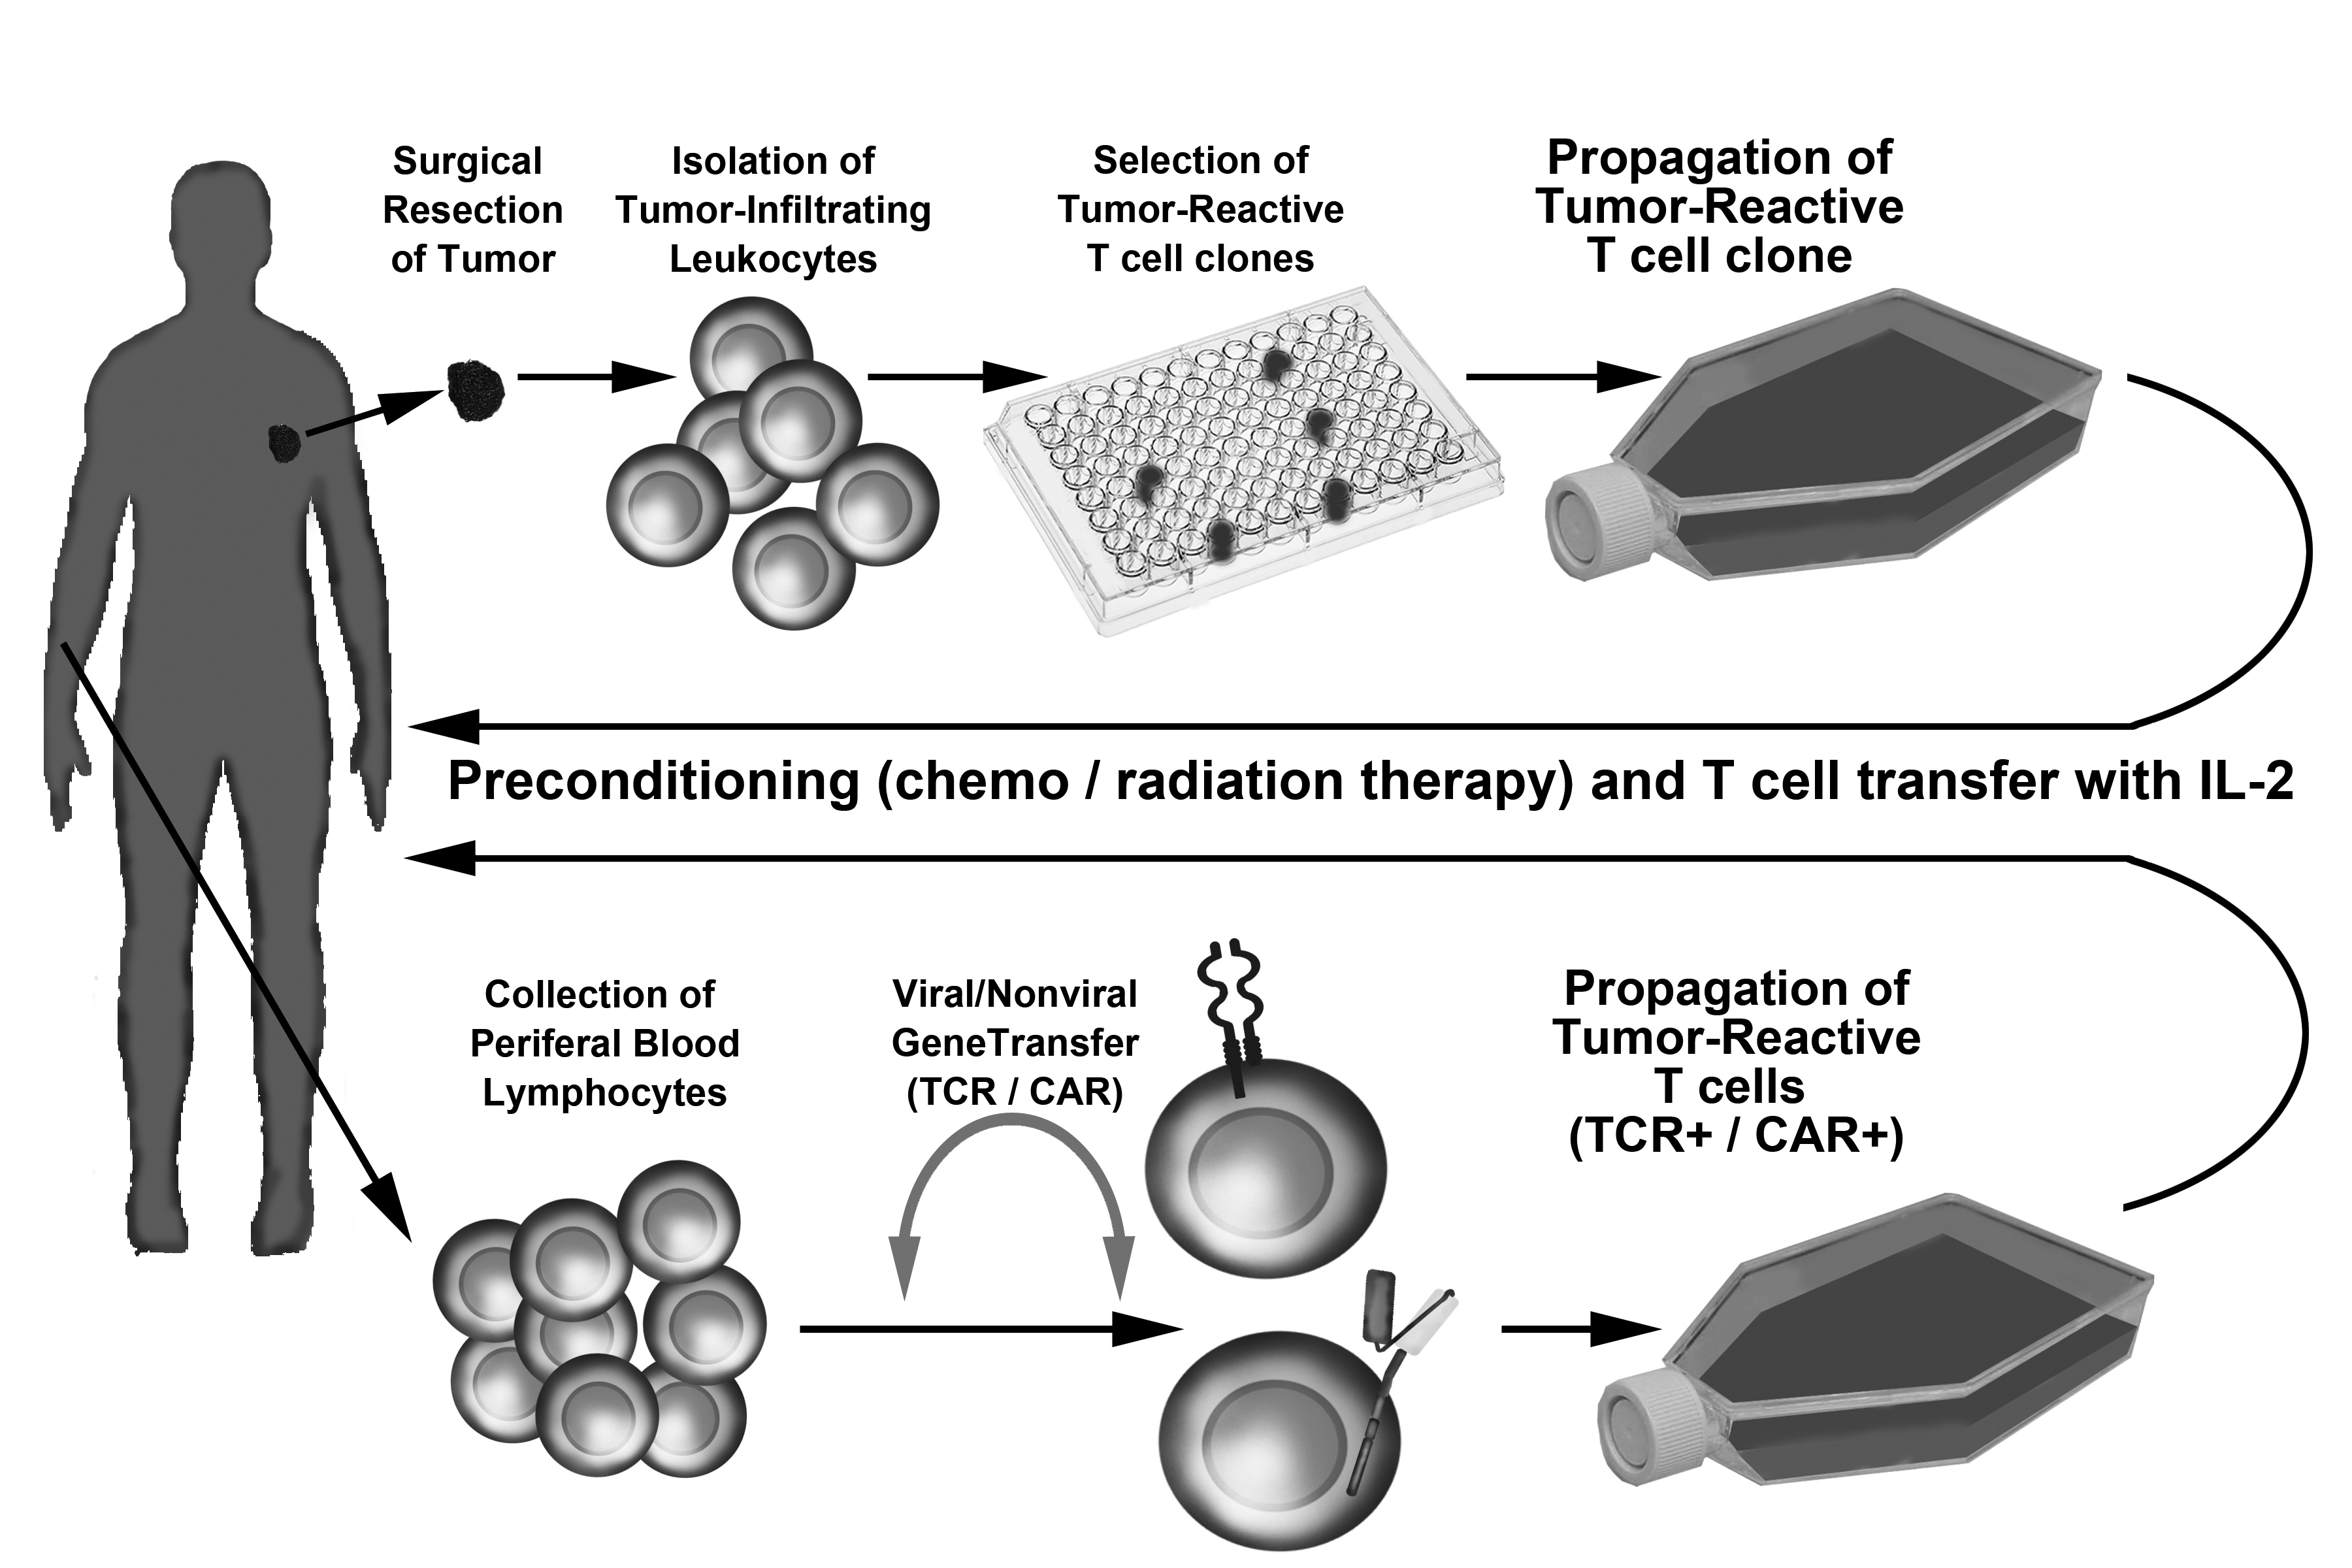 recombinant dna technology in emerging modalities for melanoma